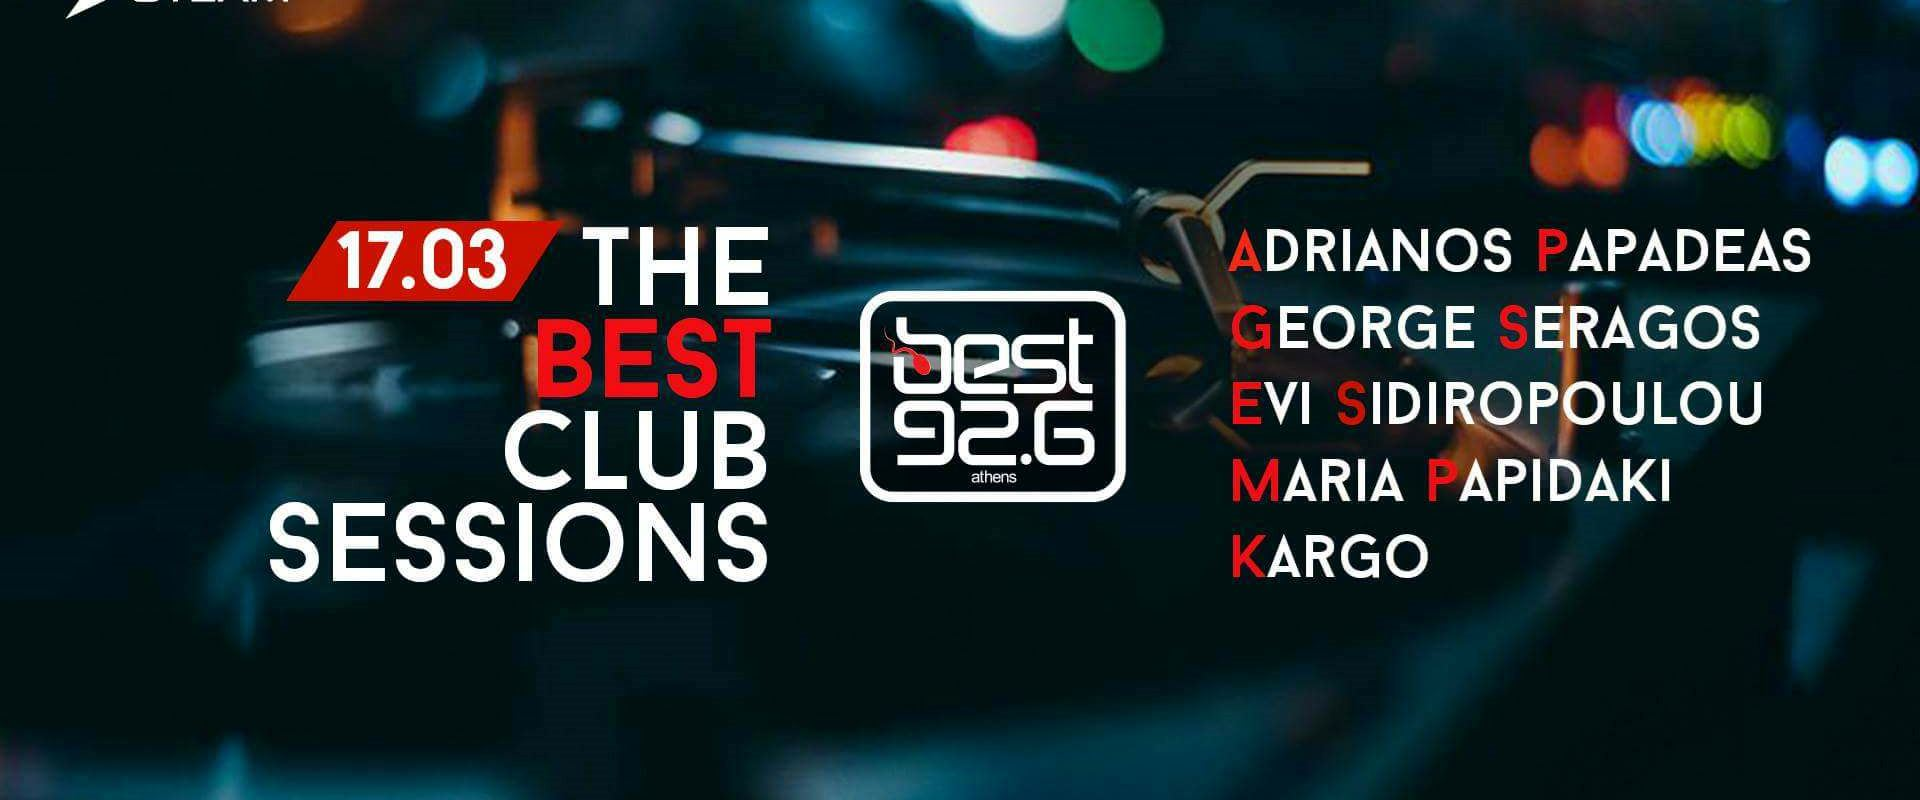 The BEST Club Sessions